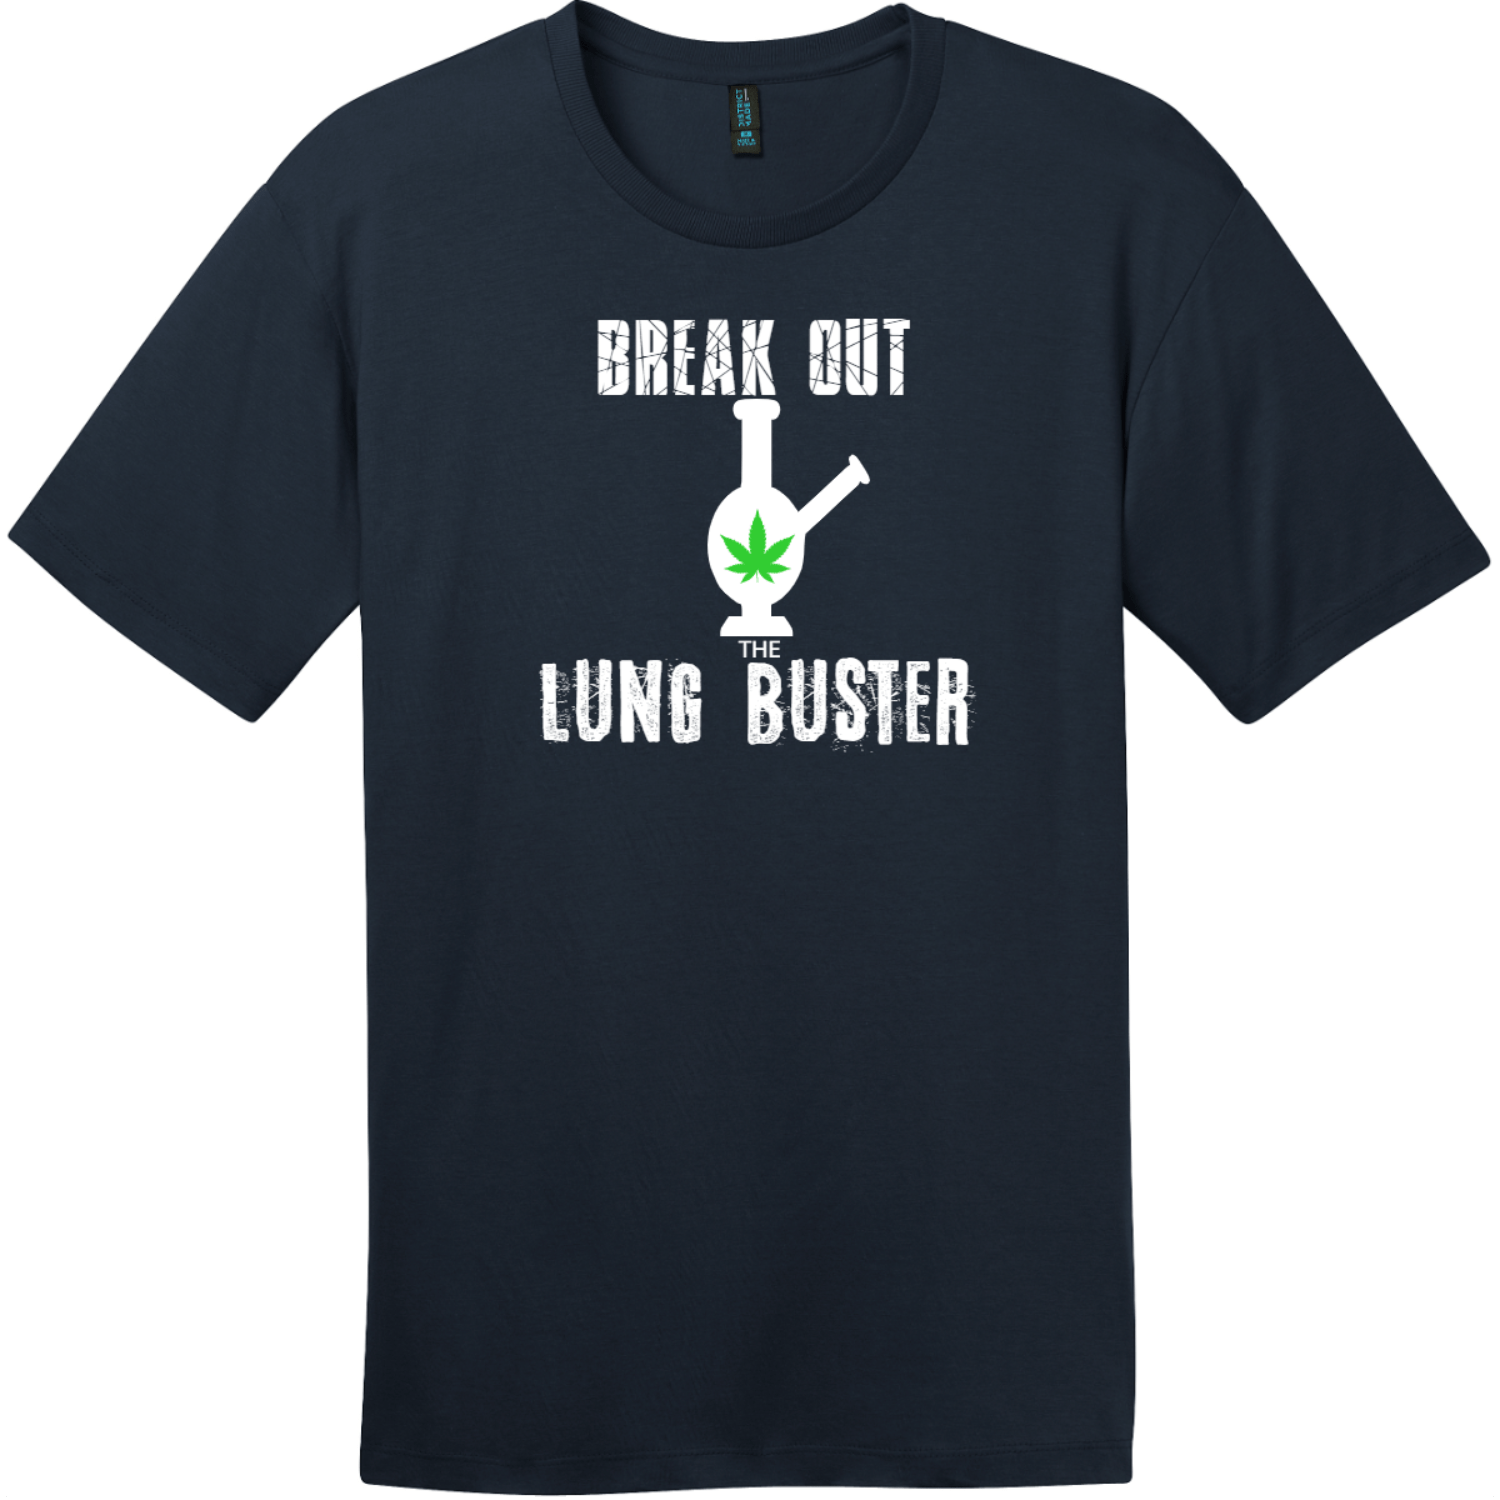 Break Out The Lung Buster Bong T-Shirt New Navy District Perfect Weight Tee DT104